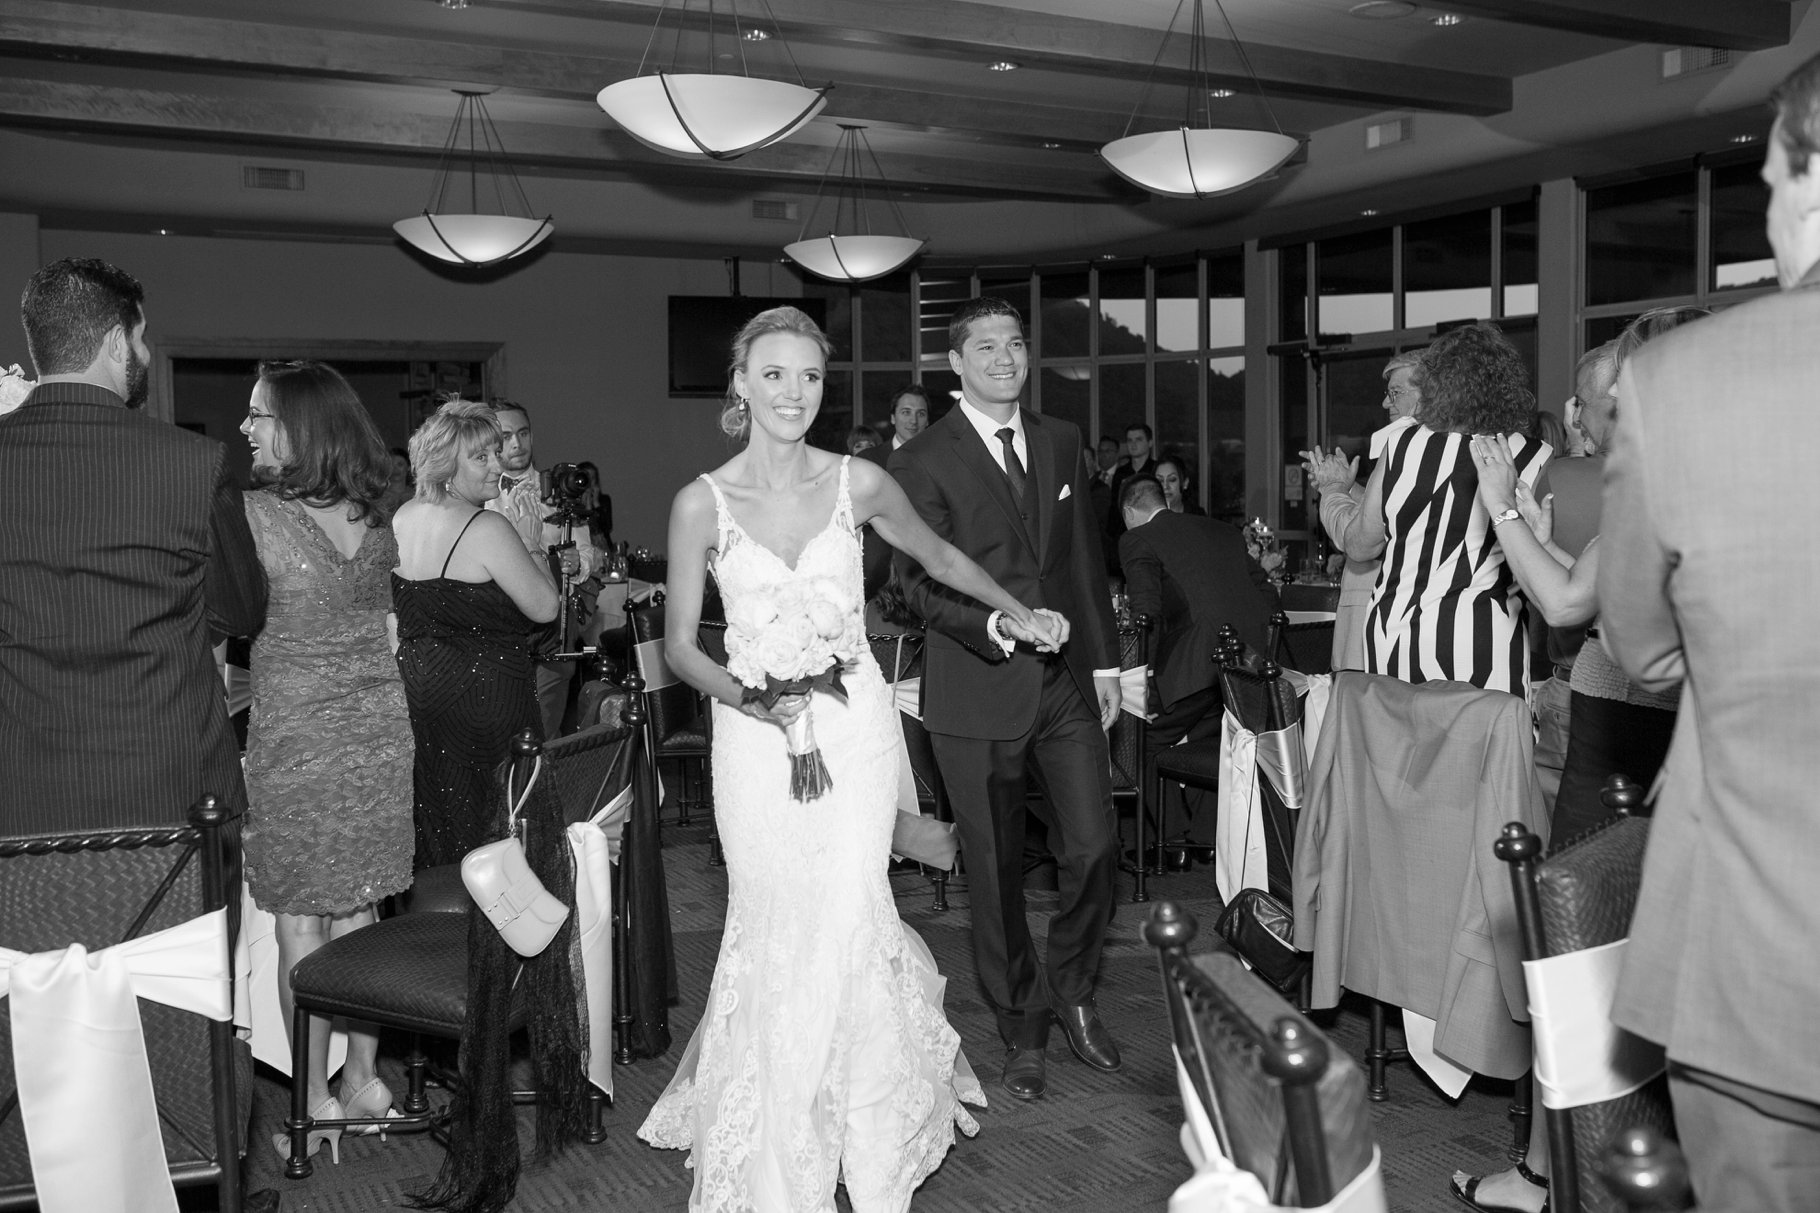 sedona wedding-500_GRETCHEN WAKEMAN PHOTOGRAPHY.jpg